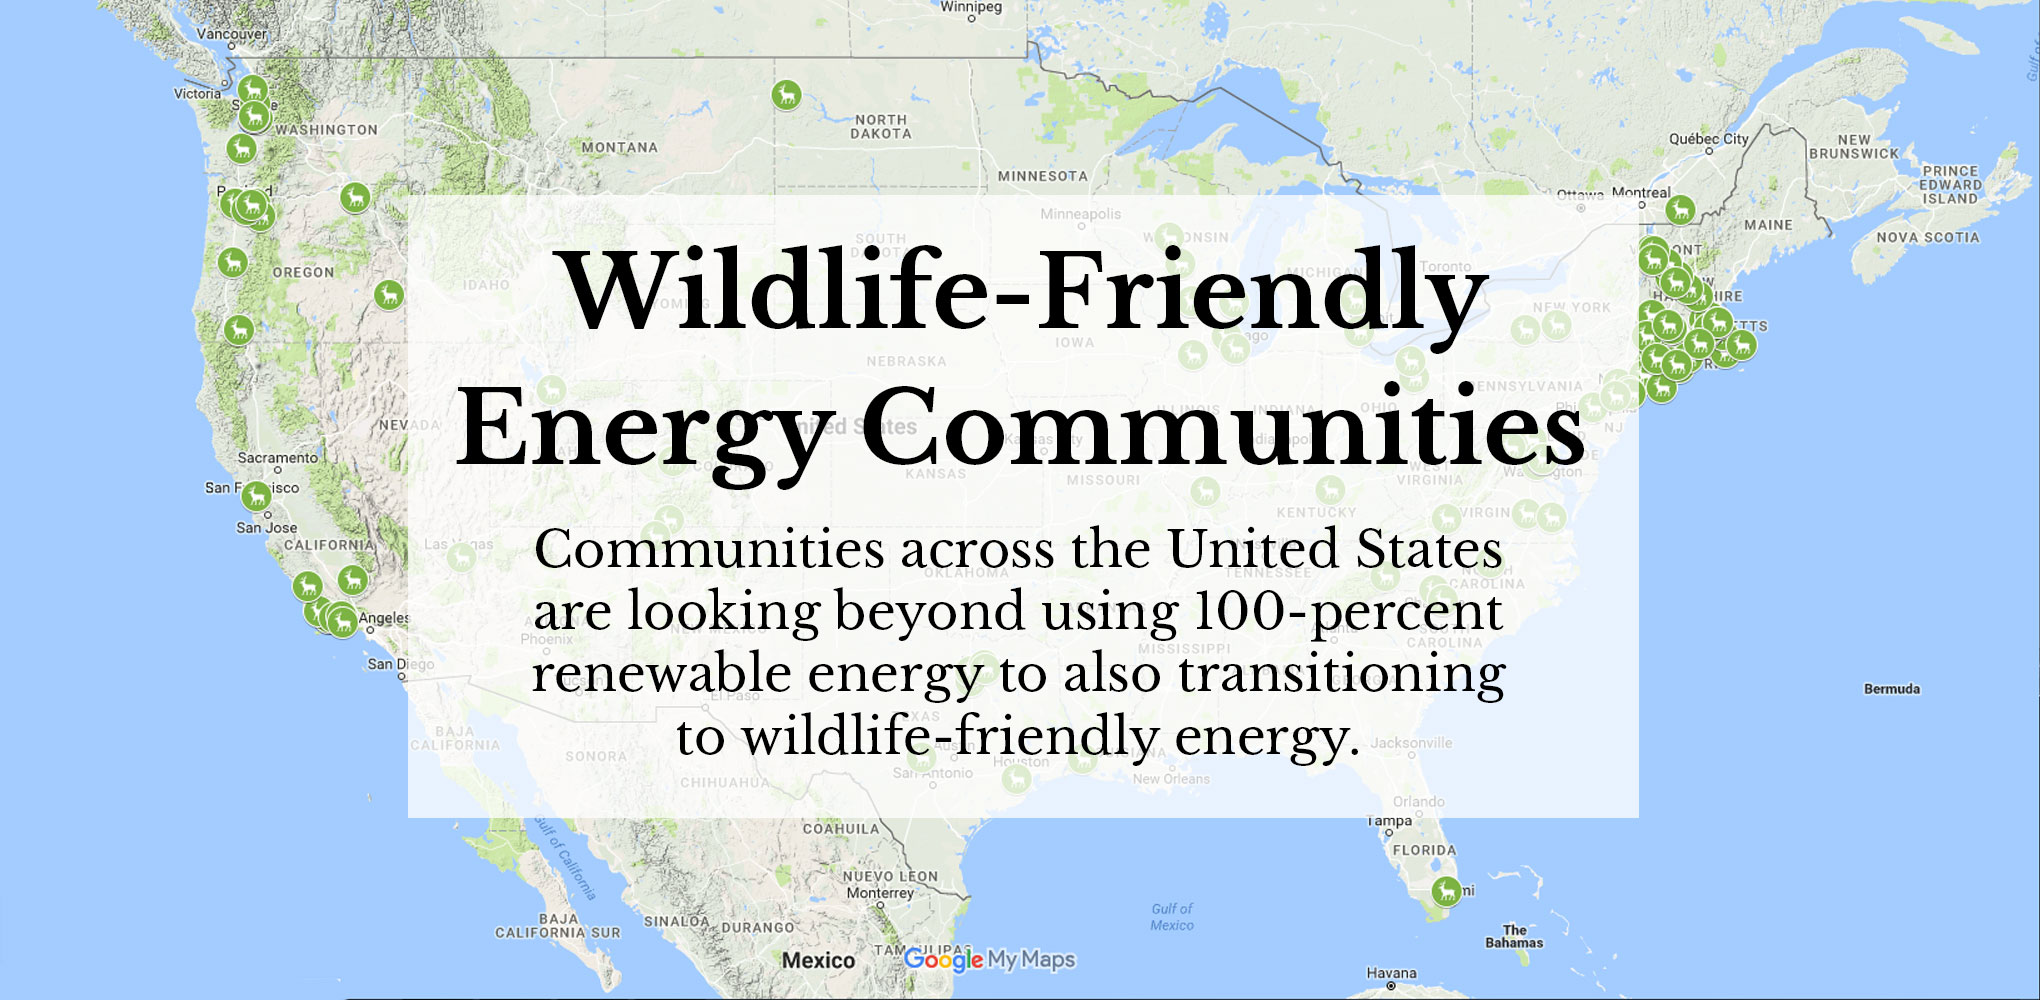 Wildlife-friendly energy communities